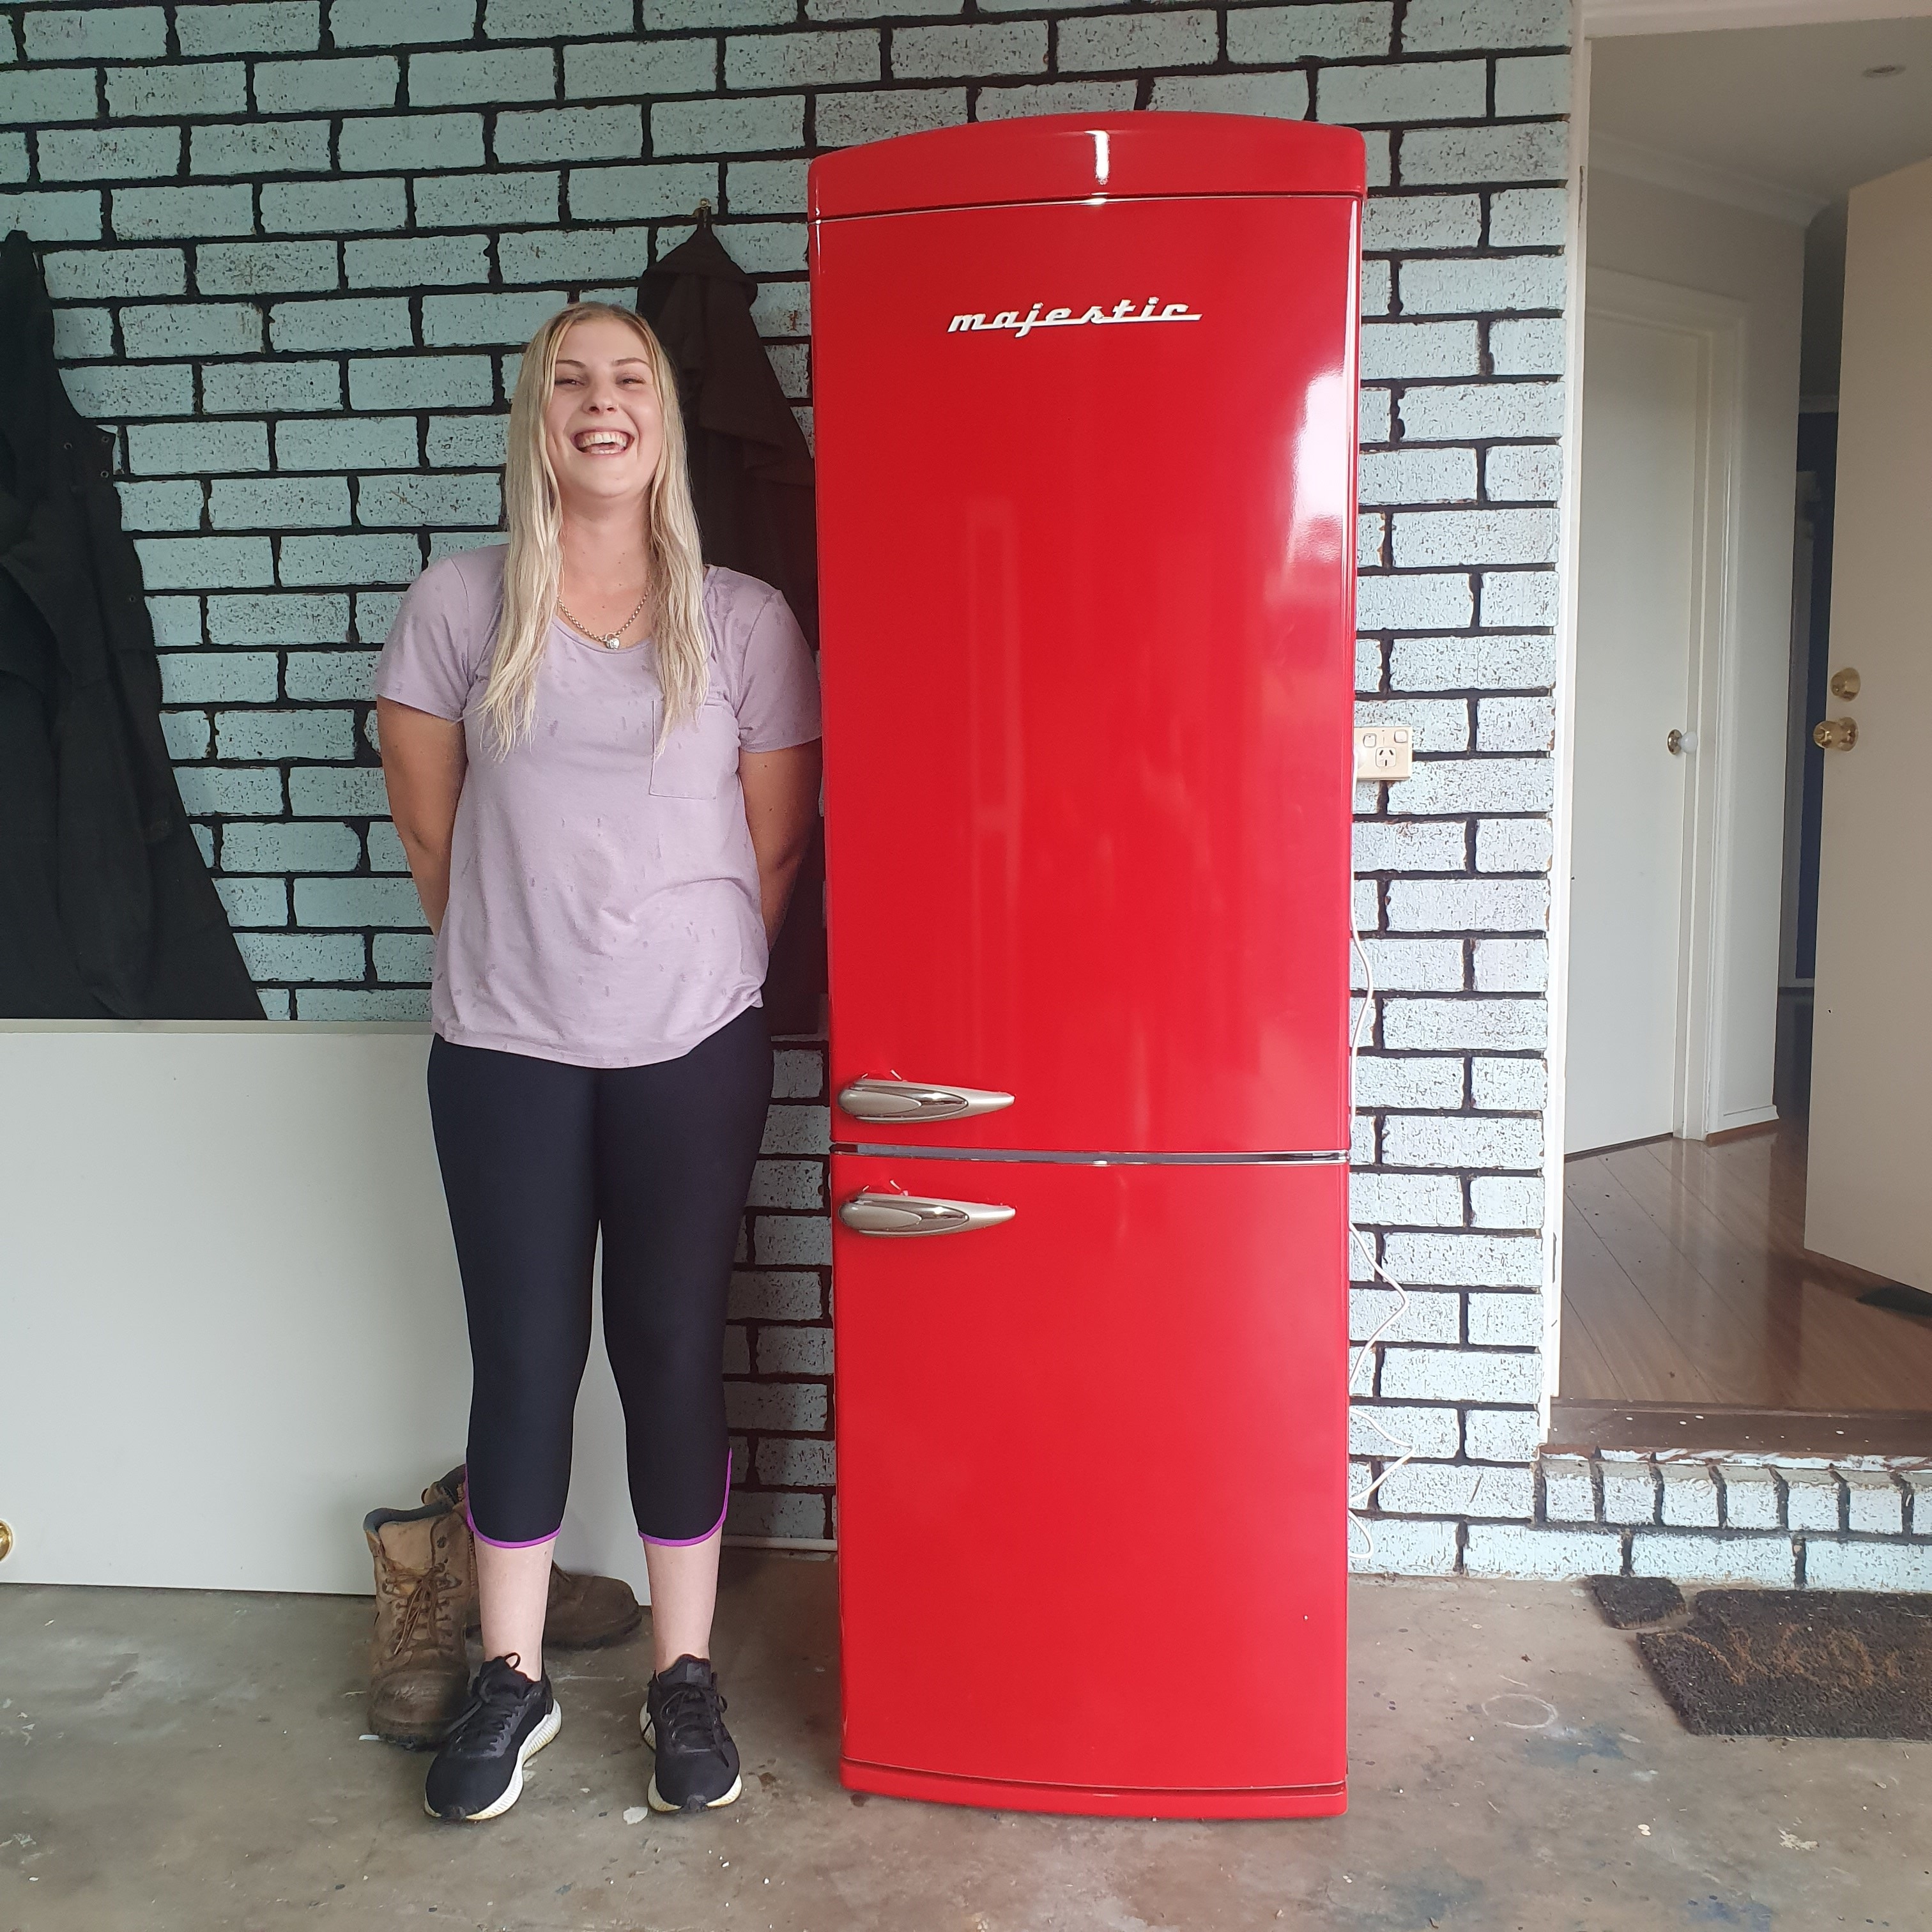 Courtney S, Majestic Fridge Winner